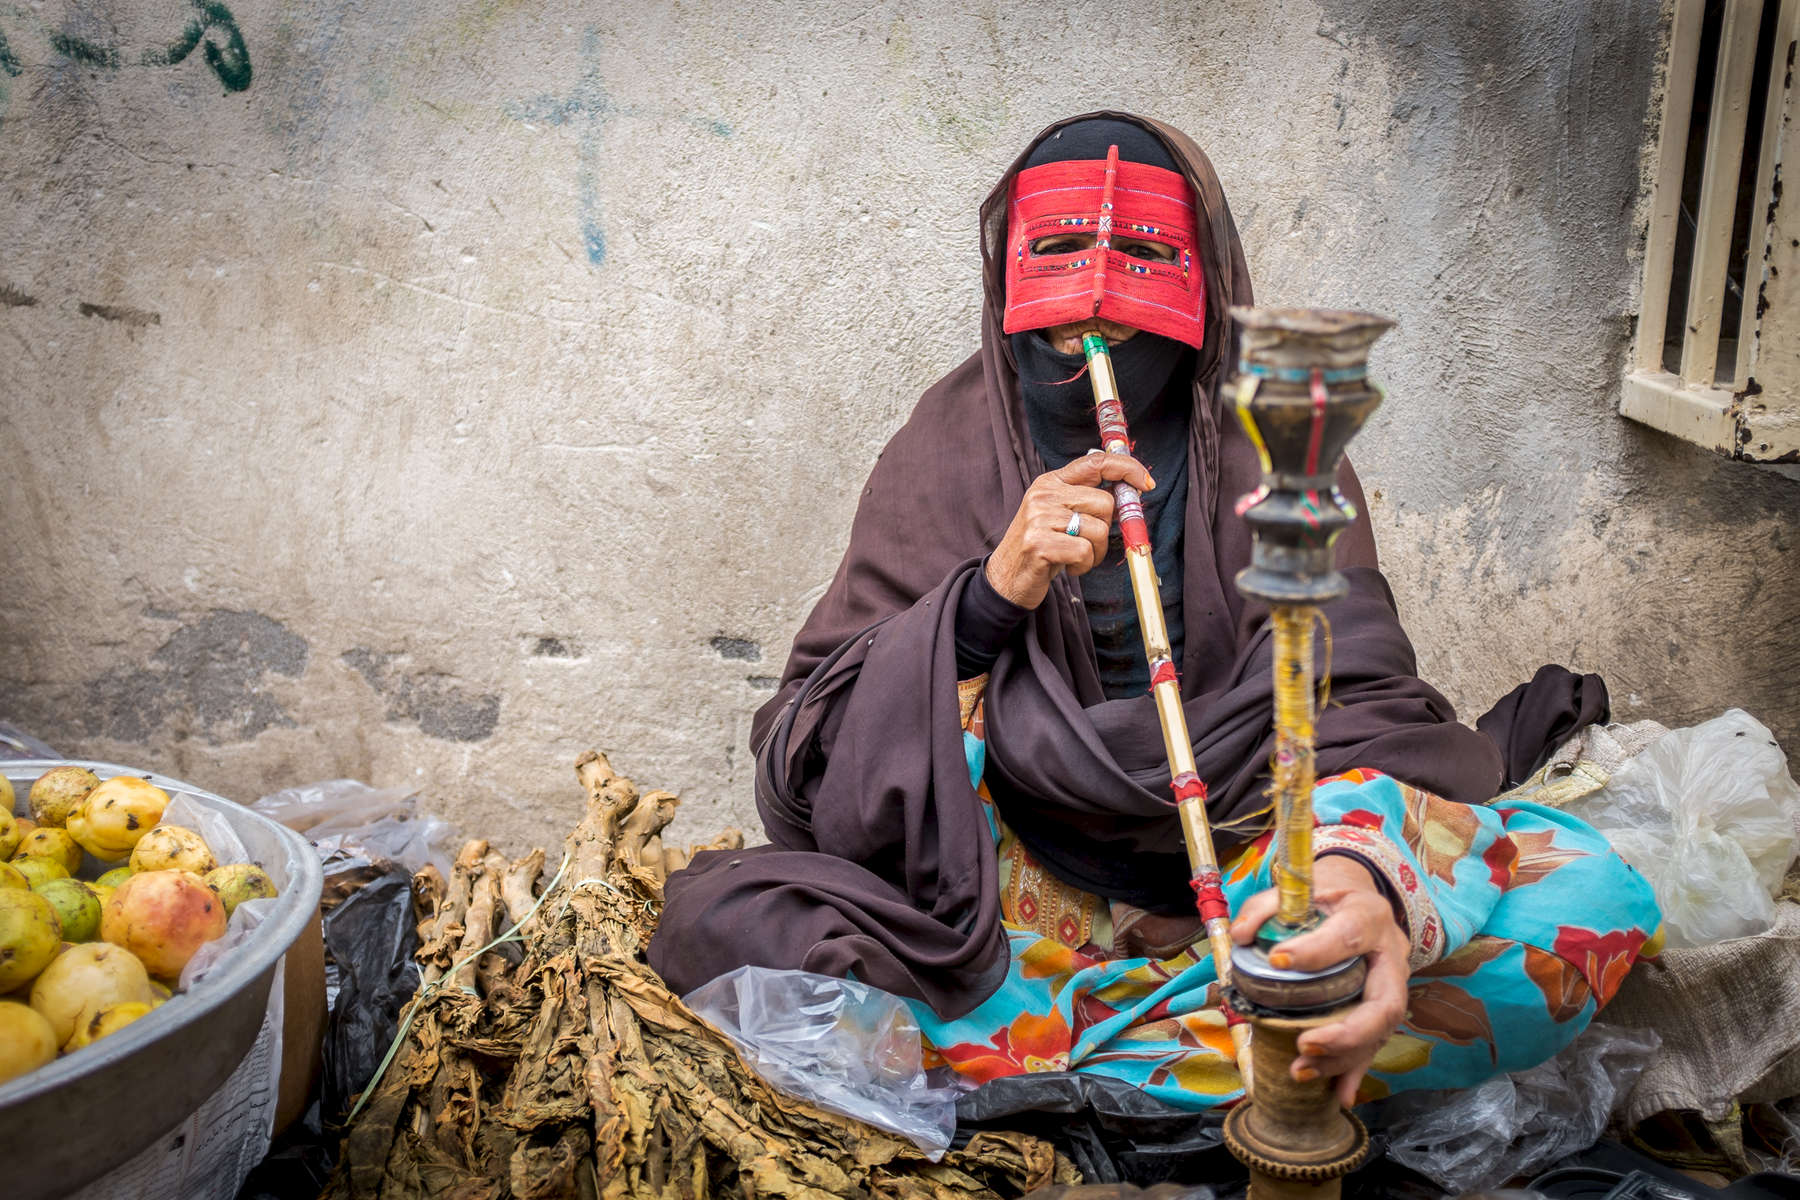 A woman vendor smoking tobacco from a waterpipe or 'nargeela' in Persian.   This practice is now banned for women throughout Iran in public places, though it remains popular amongst the vendors at the weekly Panjshambe Bazar, Minab, who can be found discreetly puffing away in corners of the market.